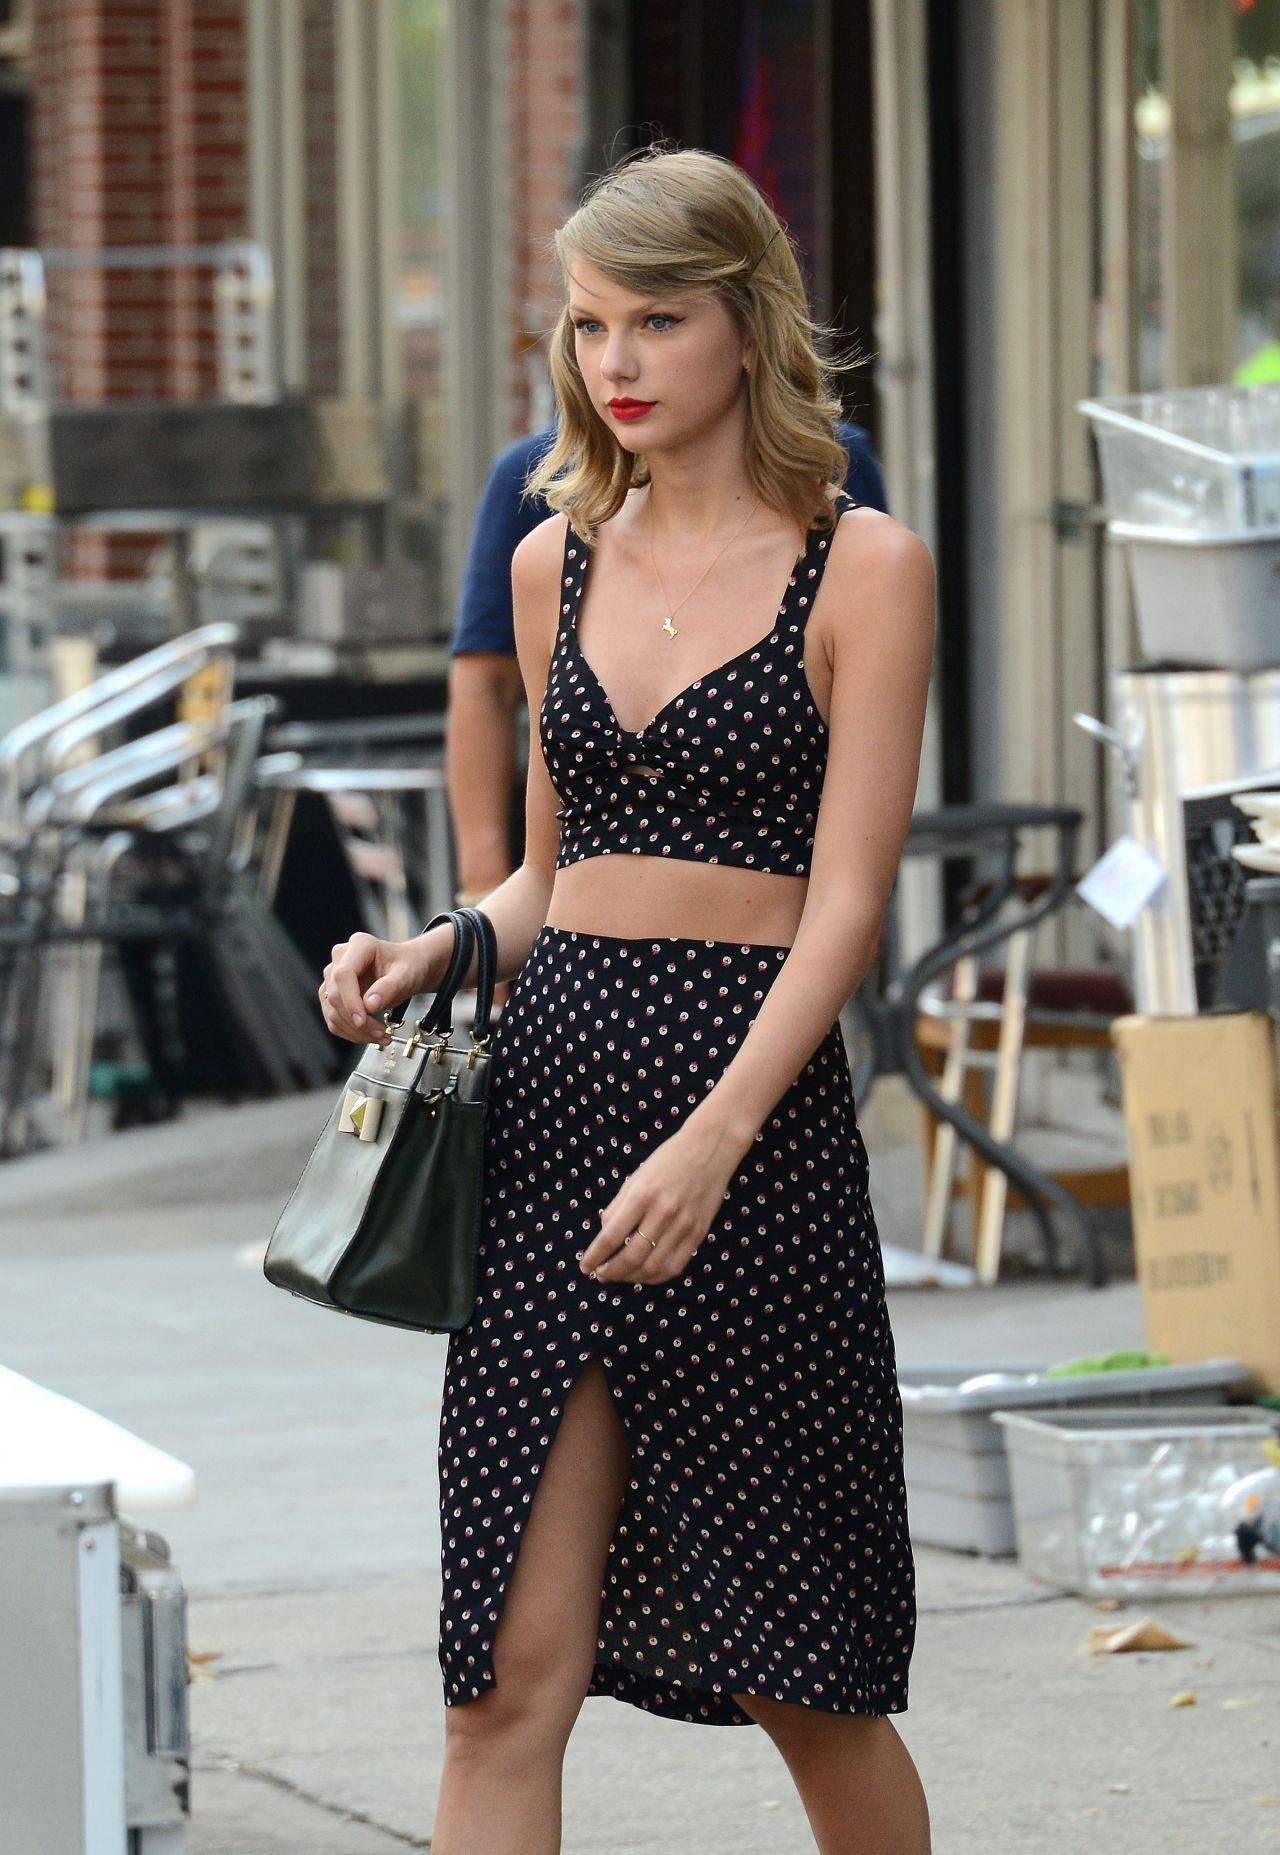 taylor swift casual style - Google Search | stuff | Pinterest